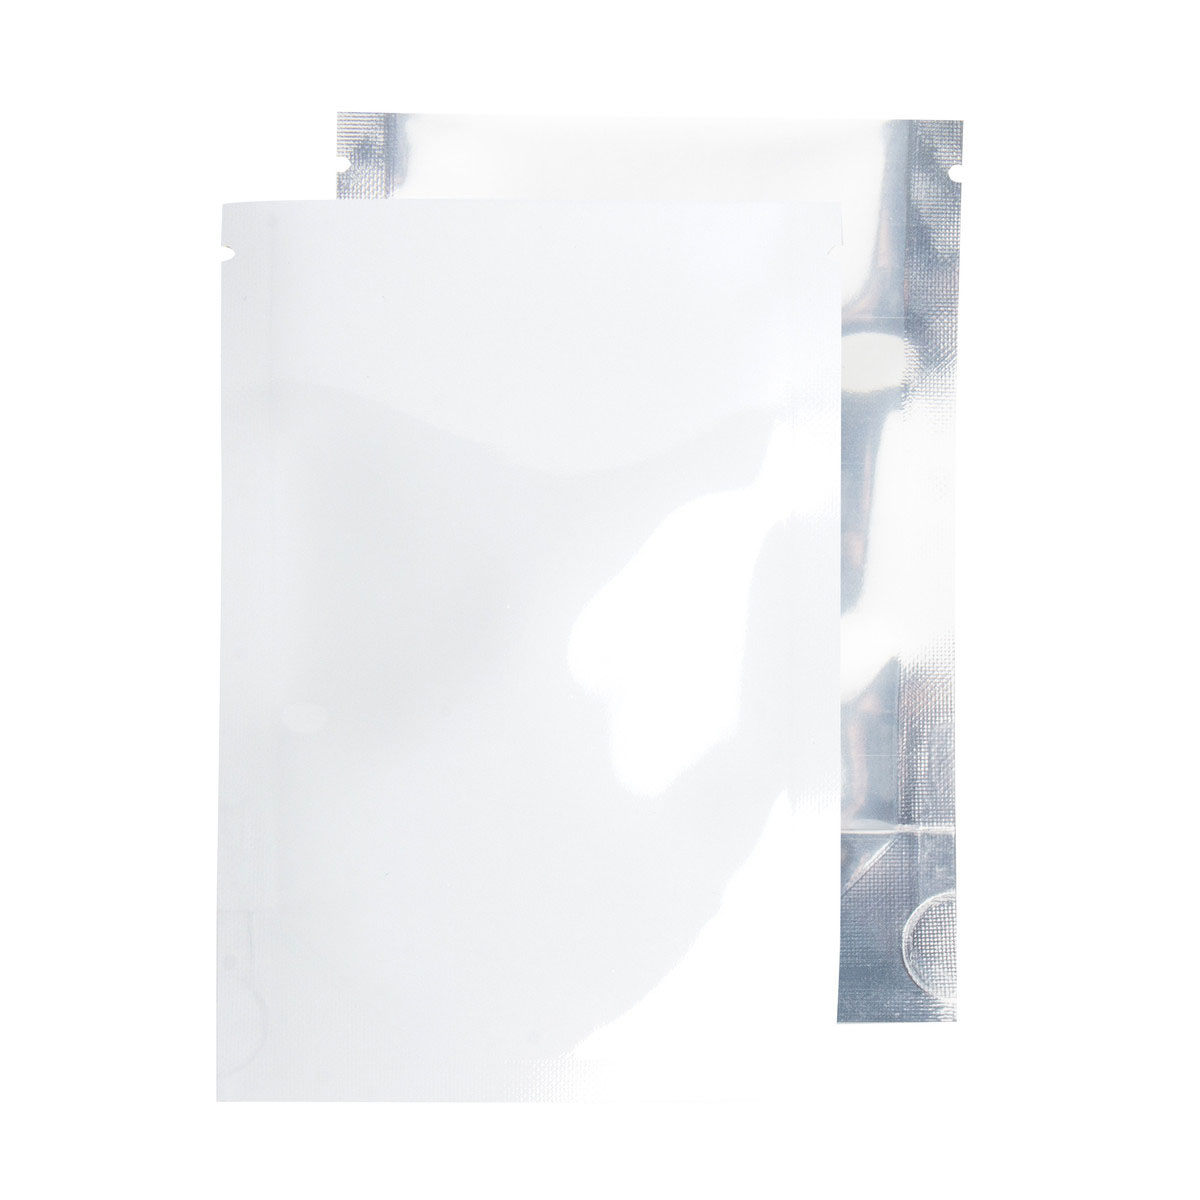 Eighth Ounce White/Clear Barrier Bags With No Zipper (100 Qty.)